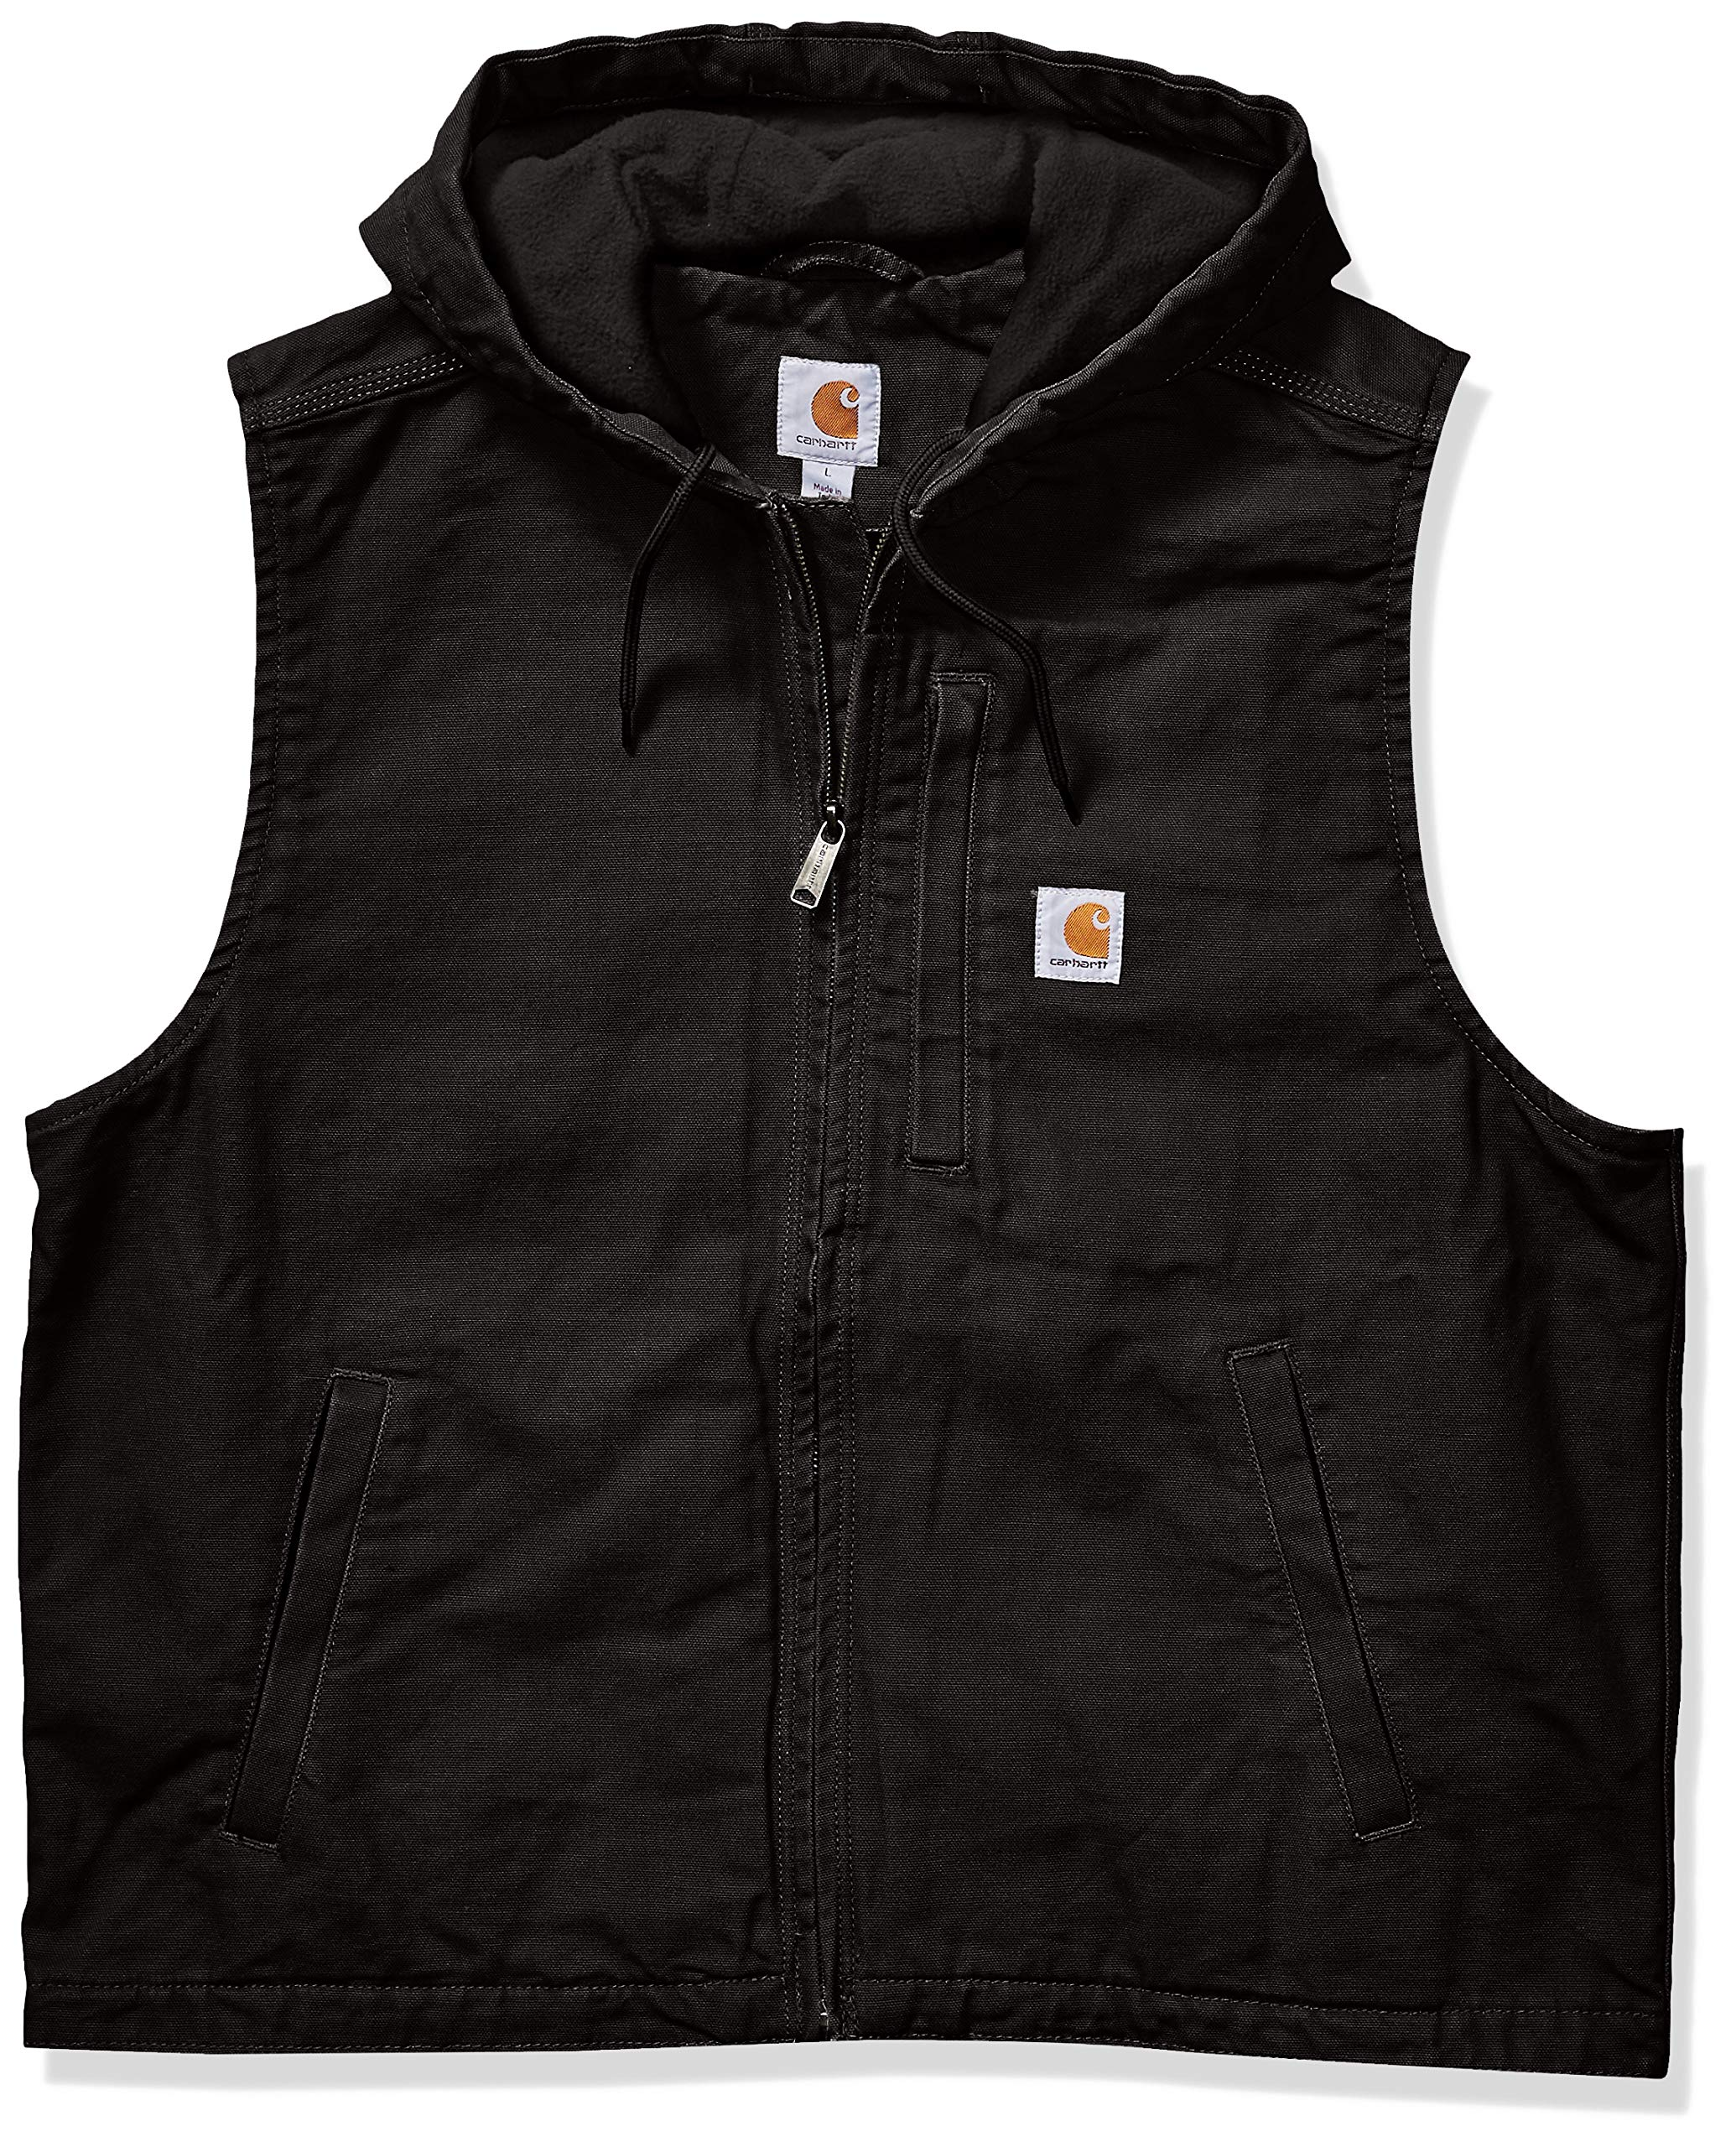 Carhartt Men's Knoxville Vest (Regular and Big & Tall Sizes), Black, Large by Carhartt